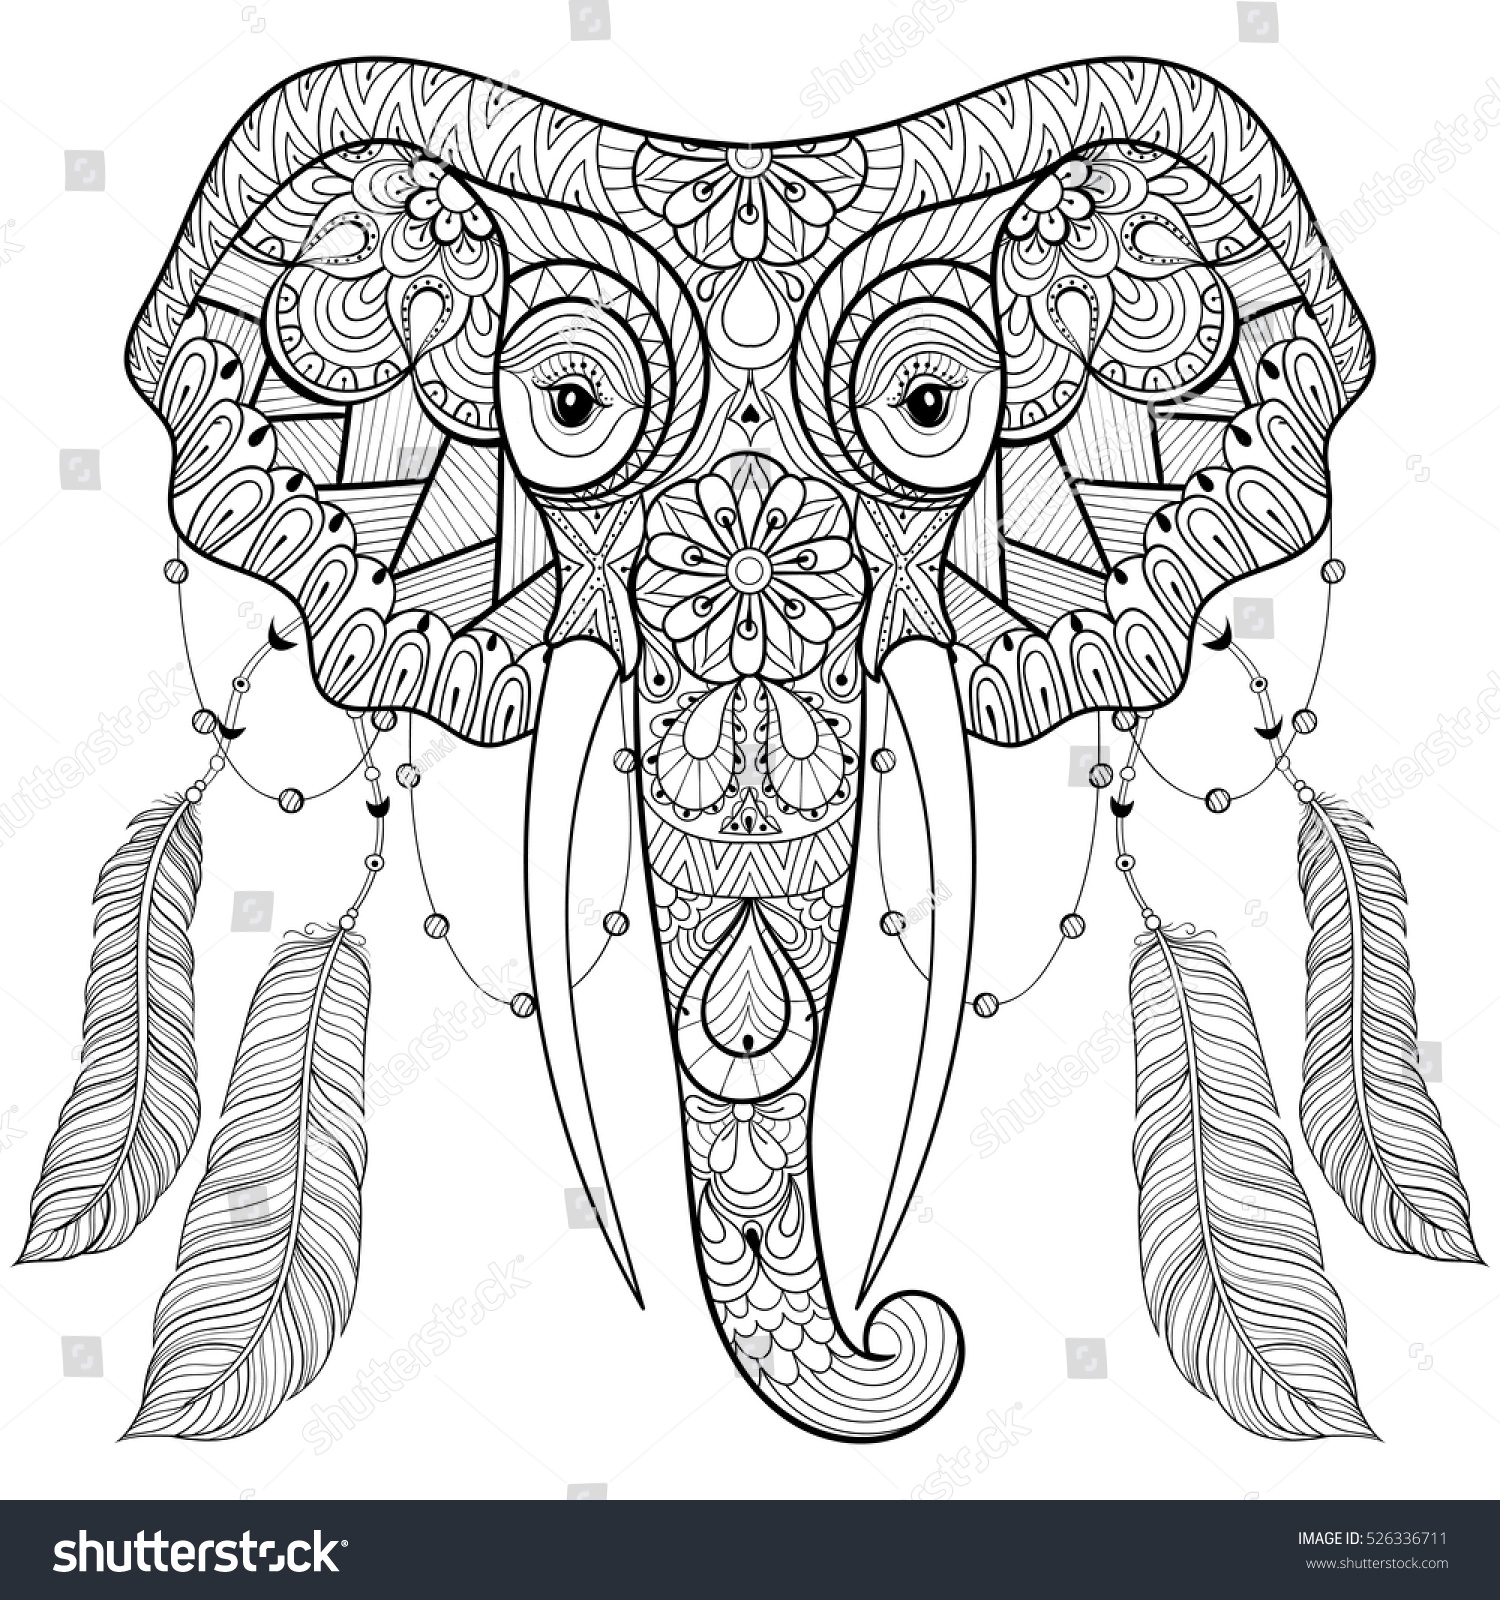 Zentangle Indian Elephant With Bird Feathers In Boho Chic Style Freehand Sketch For Adult Anti